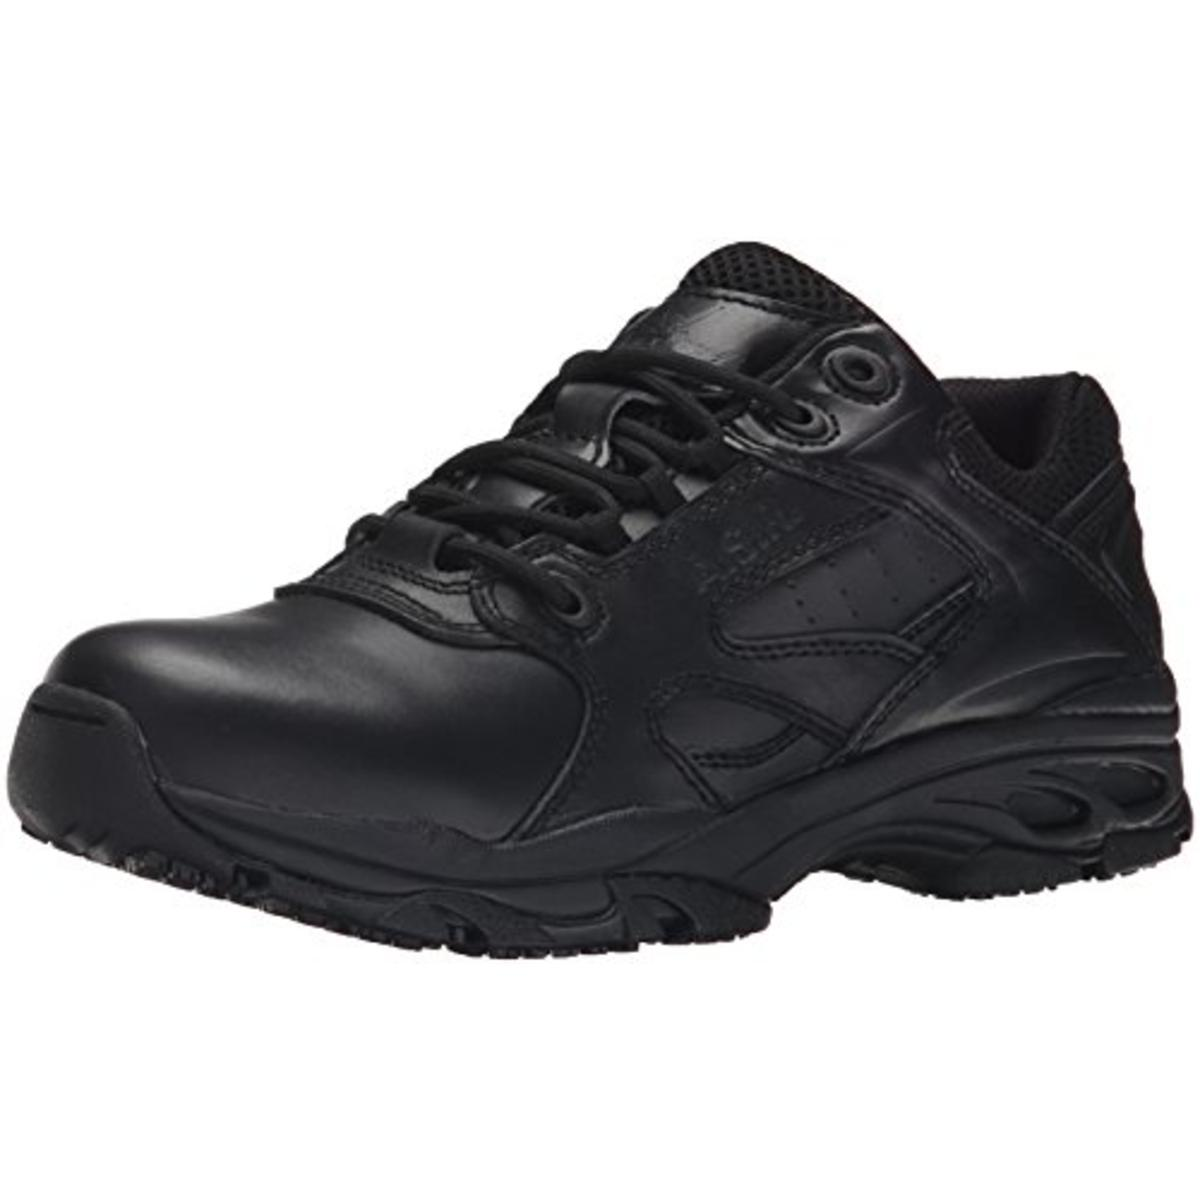 Thorogood Men's Ultra Light Tactical Oxford Soft Toe - 834-6522